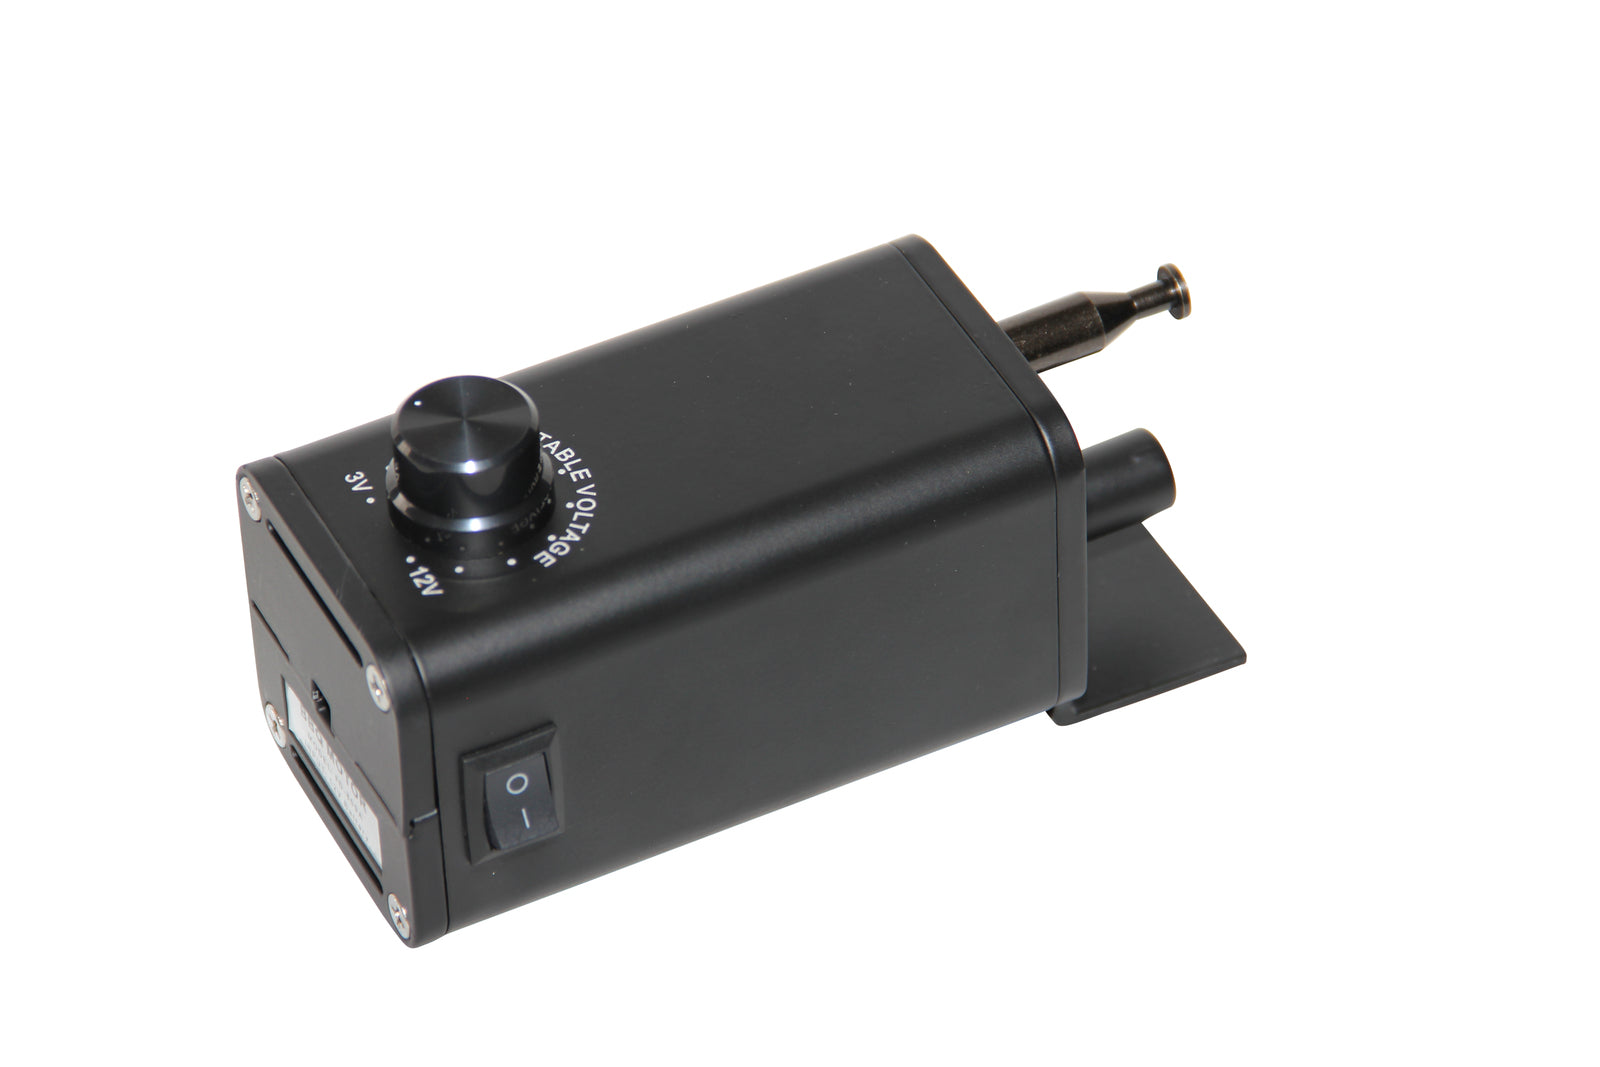 240V/12V Motor - 13kg Capacity Adjustable Speed